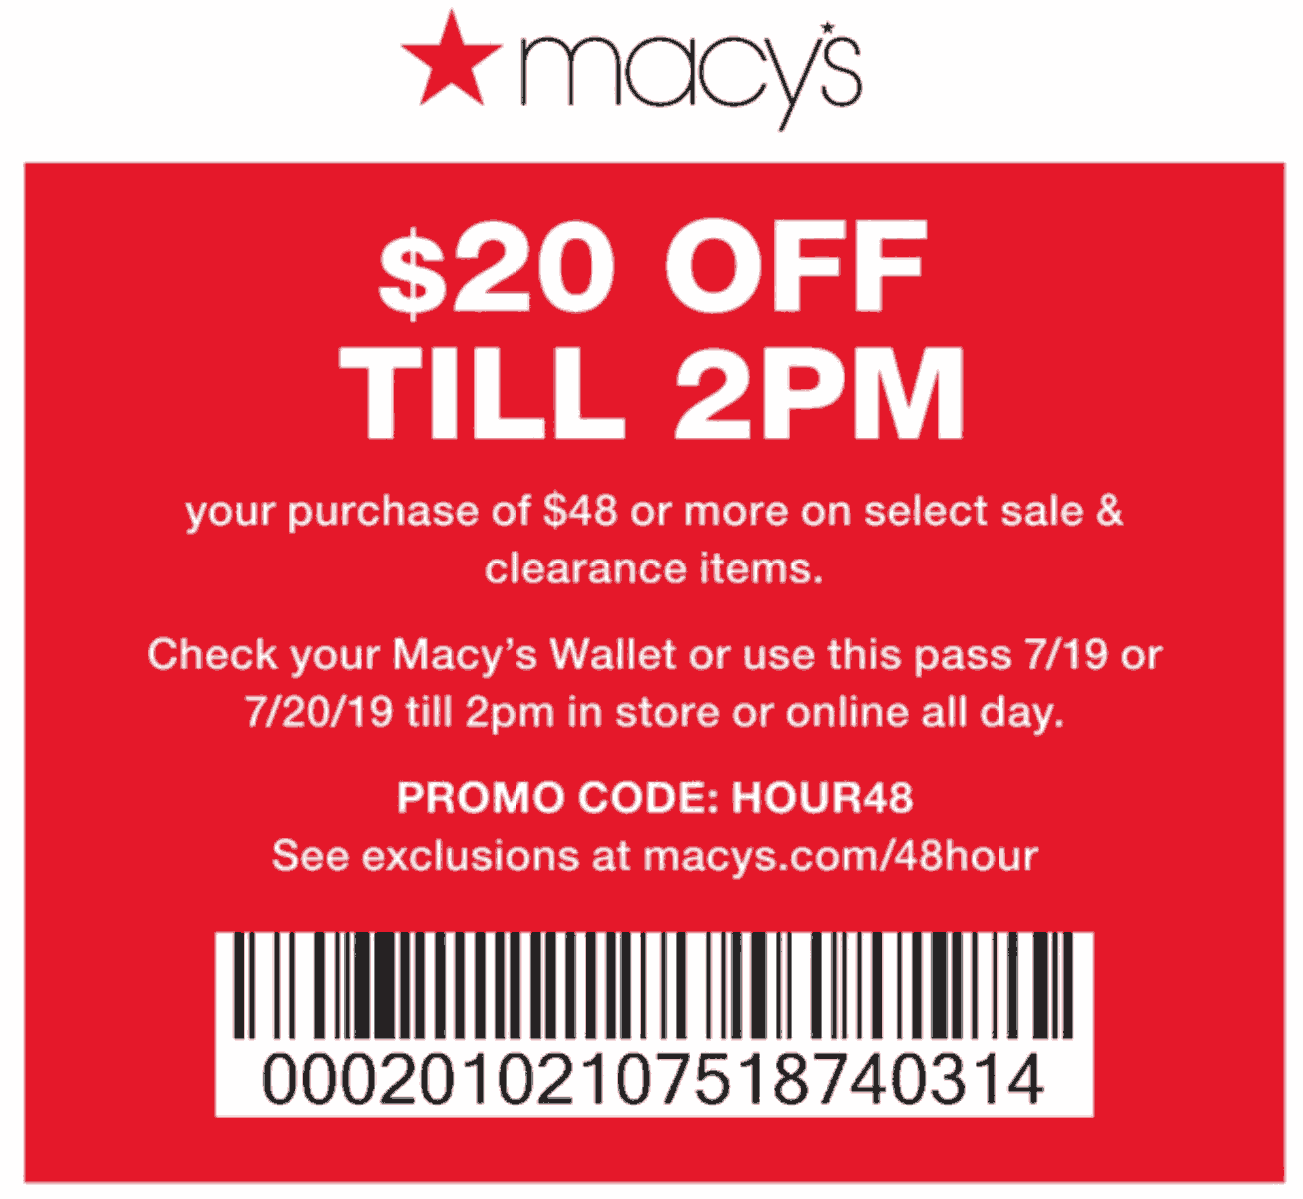 Macys Coupon February 2020 $20 off $48 til 2pm at Macys, or online via promo code HOUR48